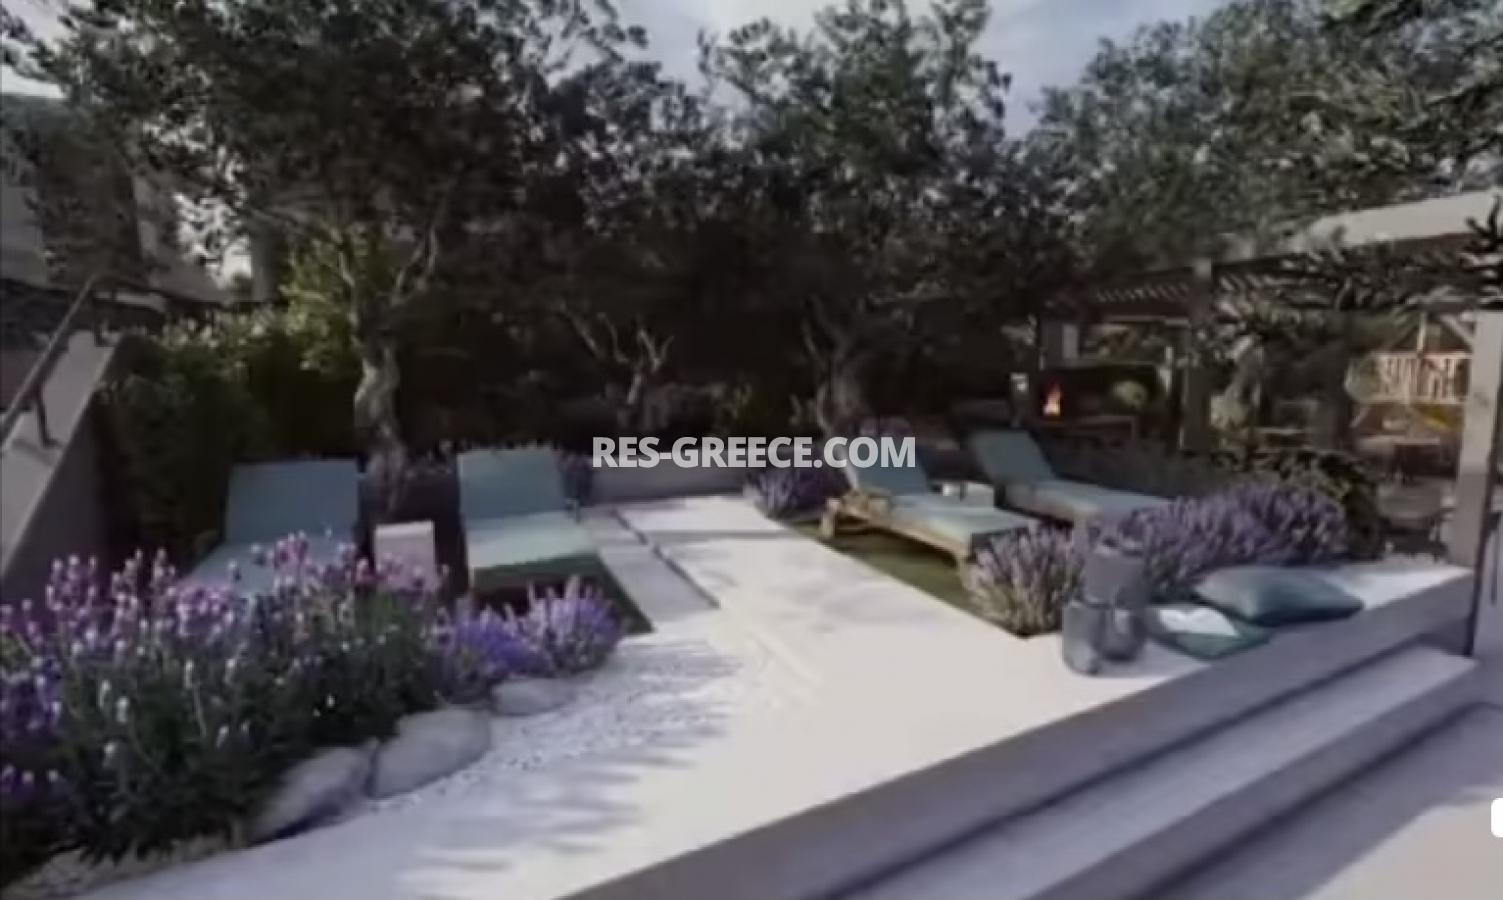 Anasa apartments, Halkidiki-Sithonia, Greece - apartments in a new complex with pool - Photo 13